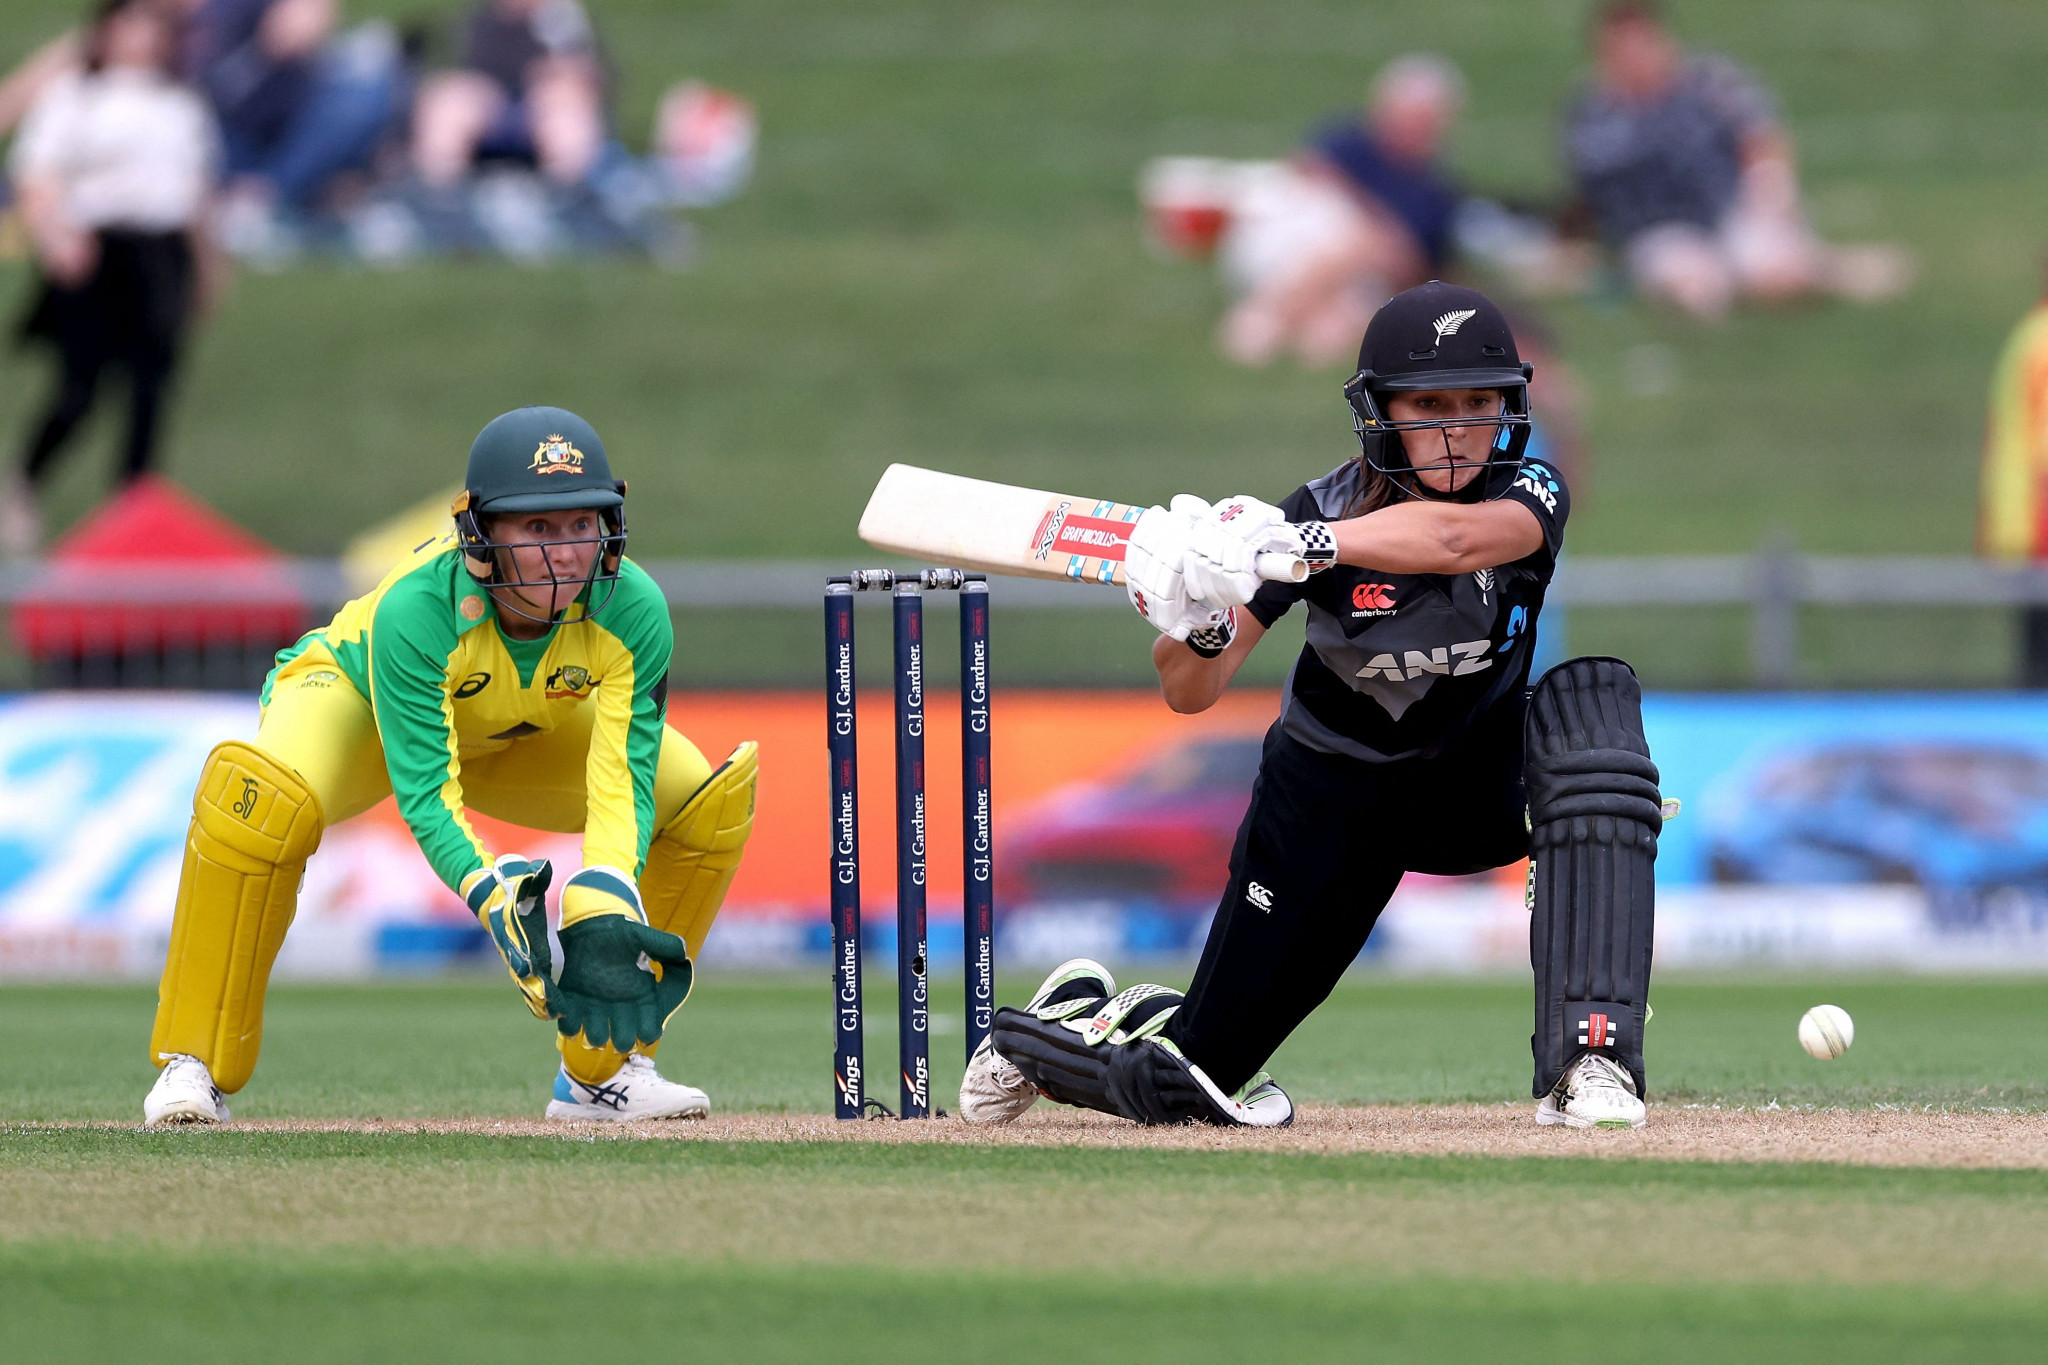 Five qualified teams for women's cricket tournament at Commonwealth Games confirmed